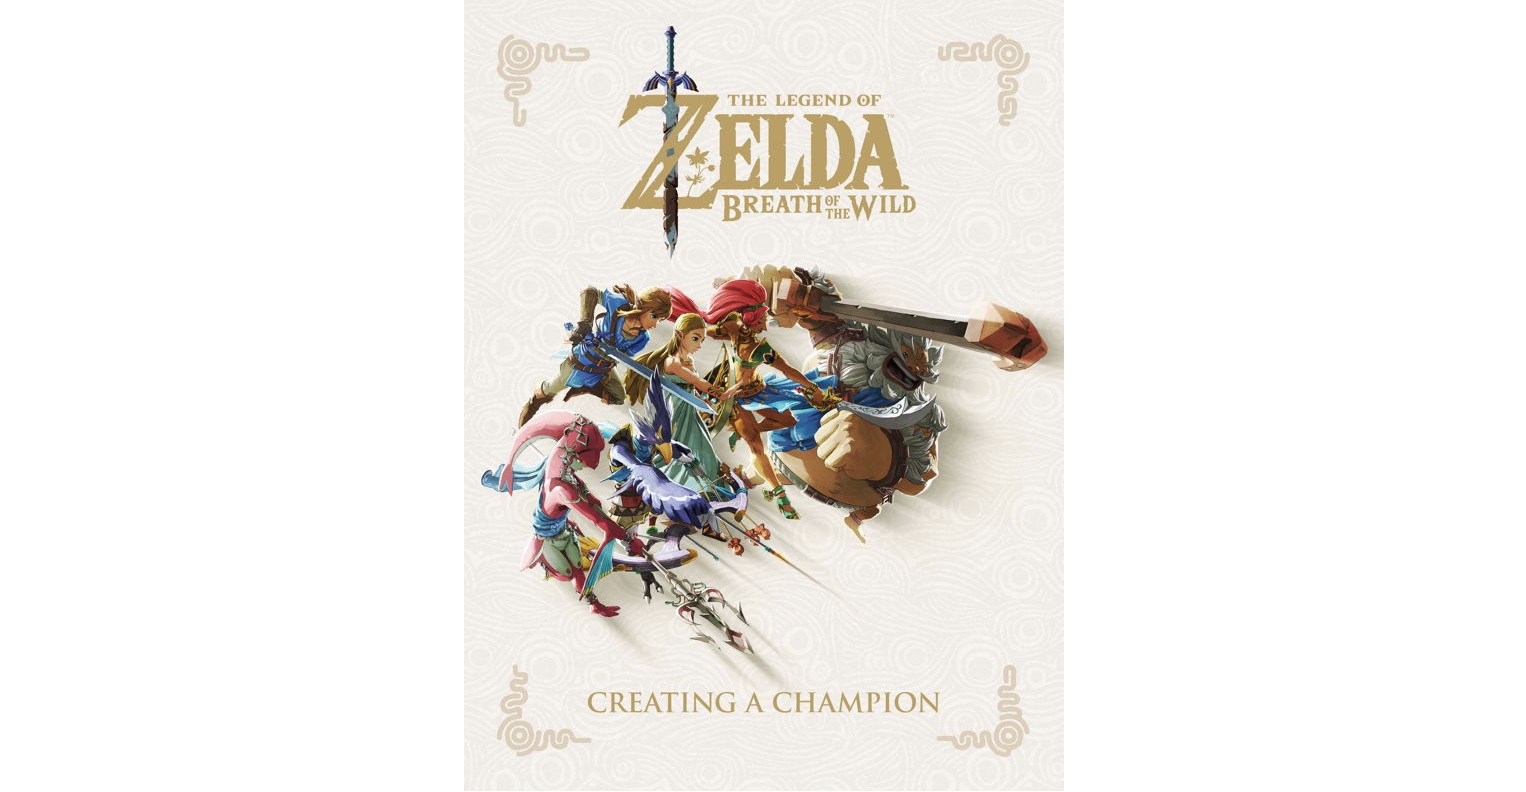 Breath of the Wild — Creating a Champion Book Releasing November 20th,  Available Now For Pre-Order